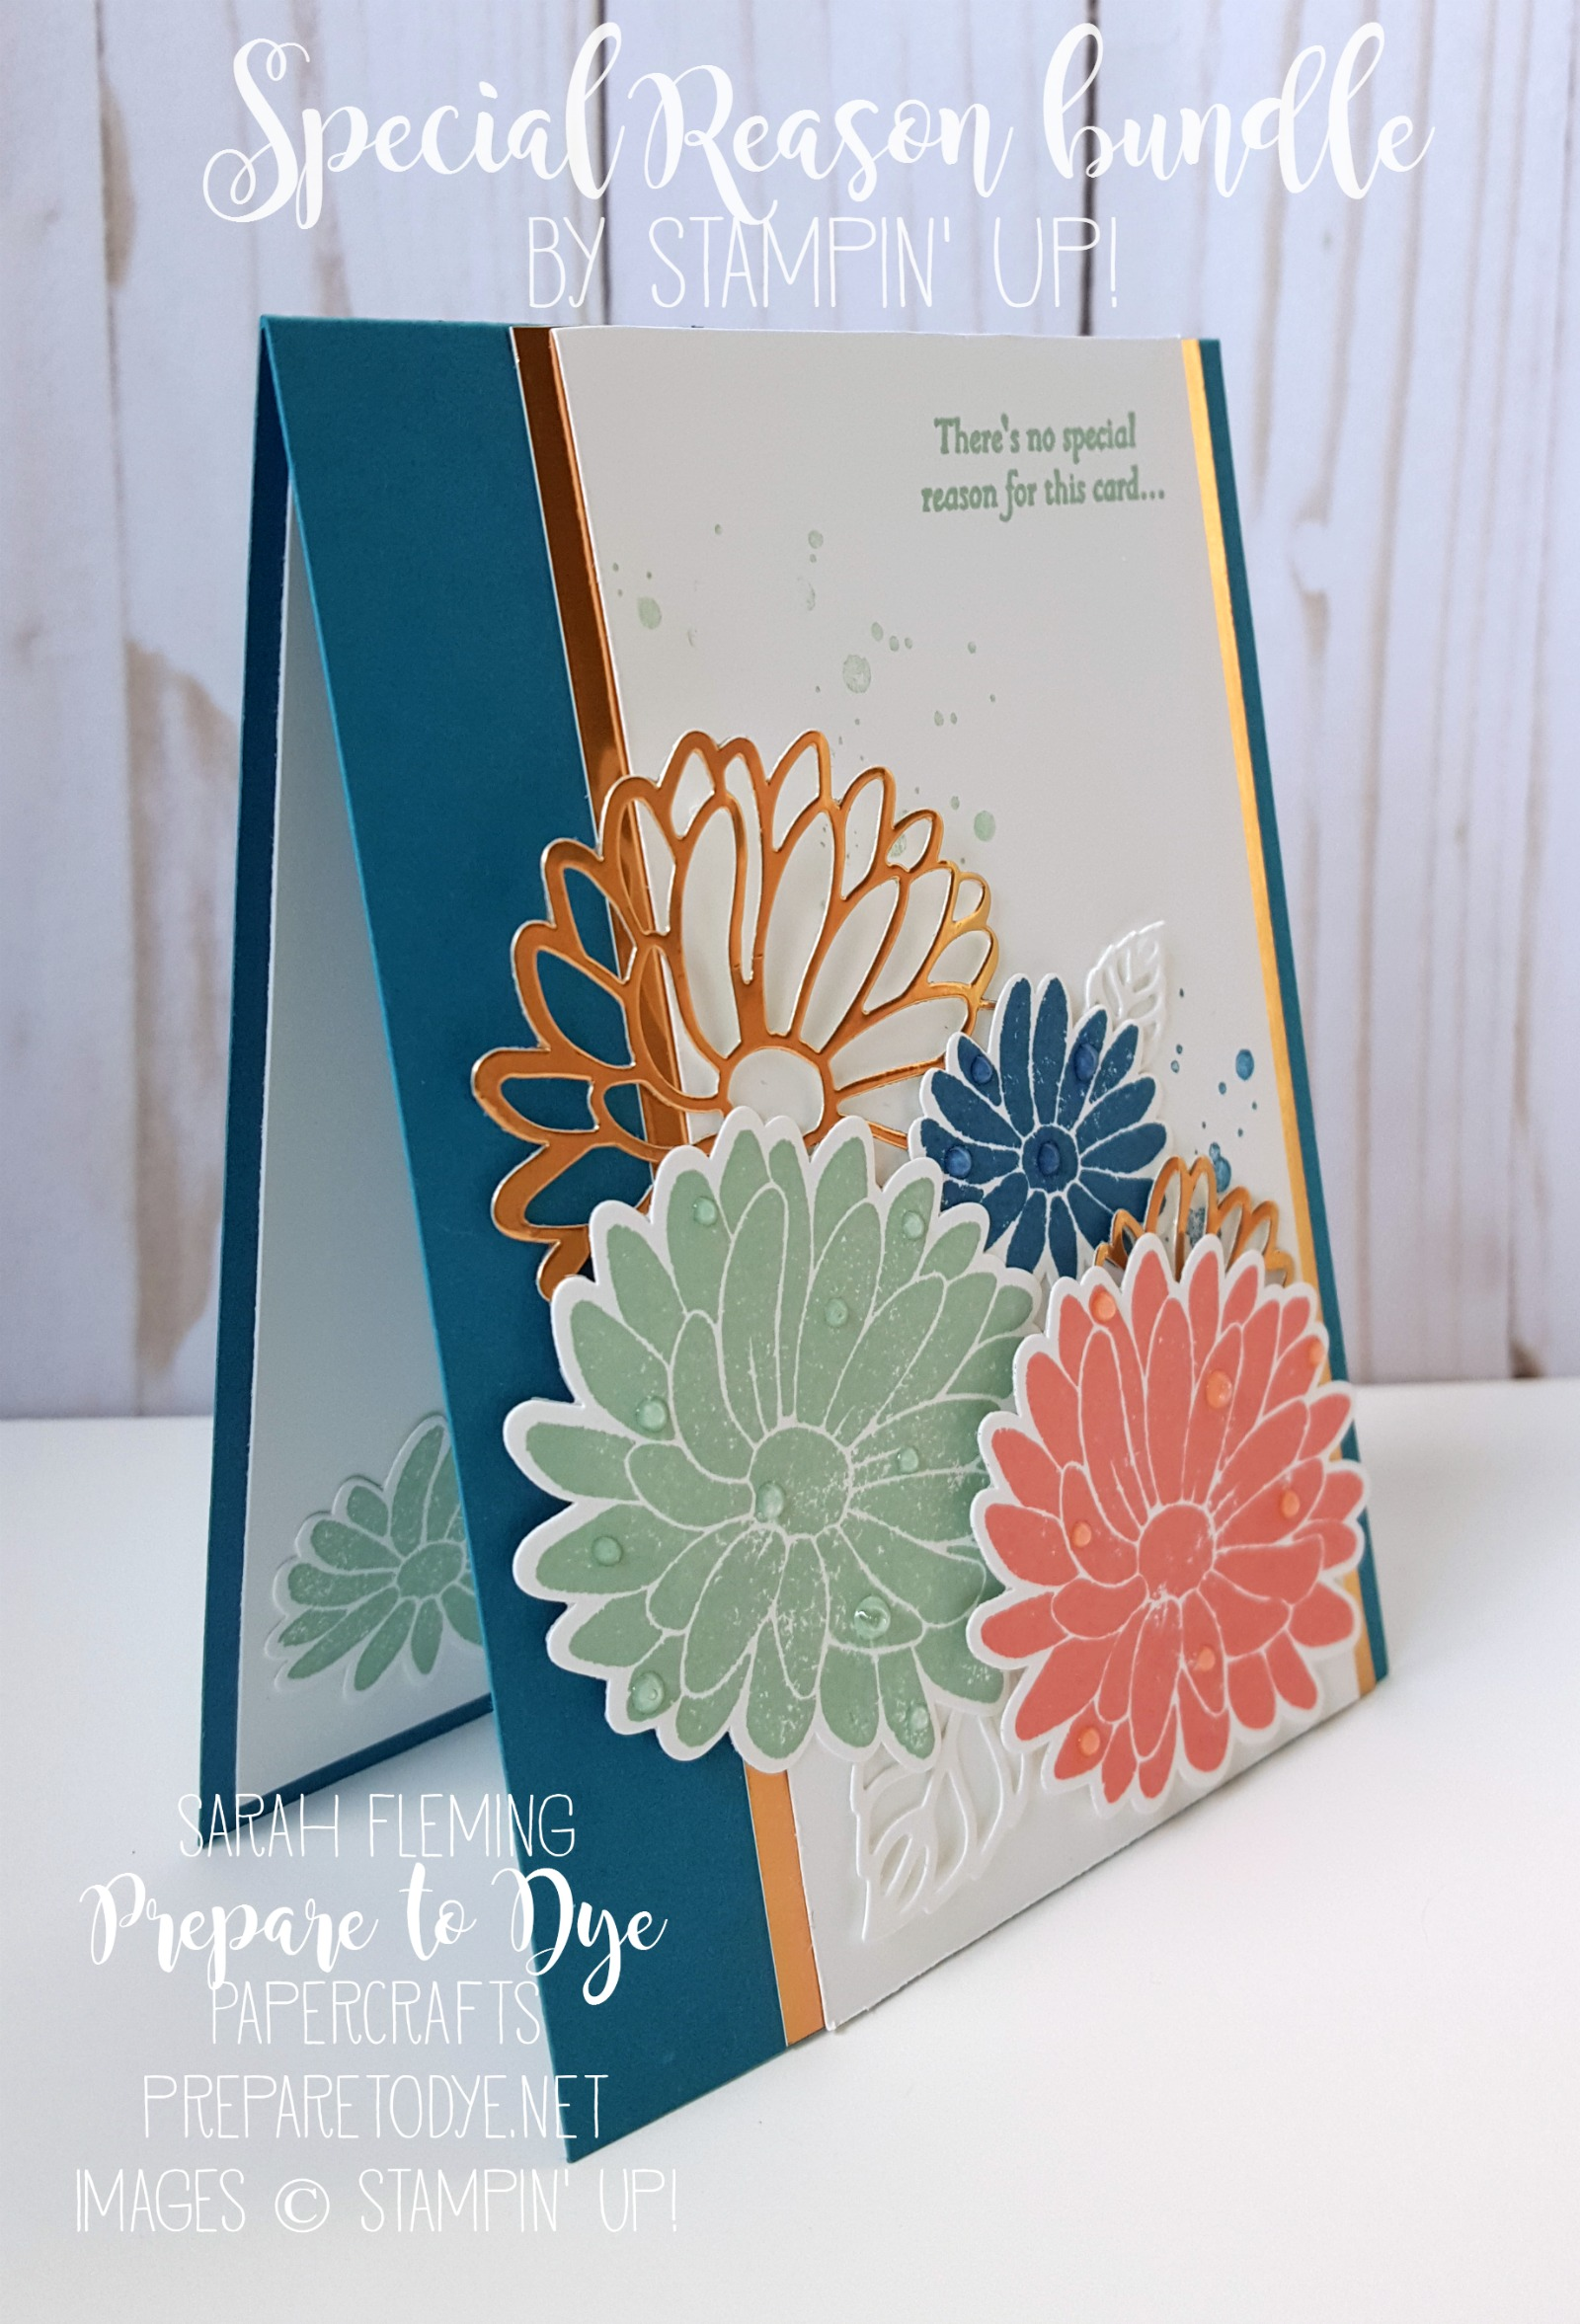 Stampin' Up! Special Reason bundle w/ Stylish Stems framelits - handmade card with flowers - #GDP076 - Sarah Fleming - Prepare to Dye Papercrafts